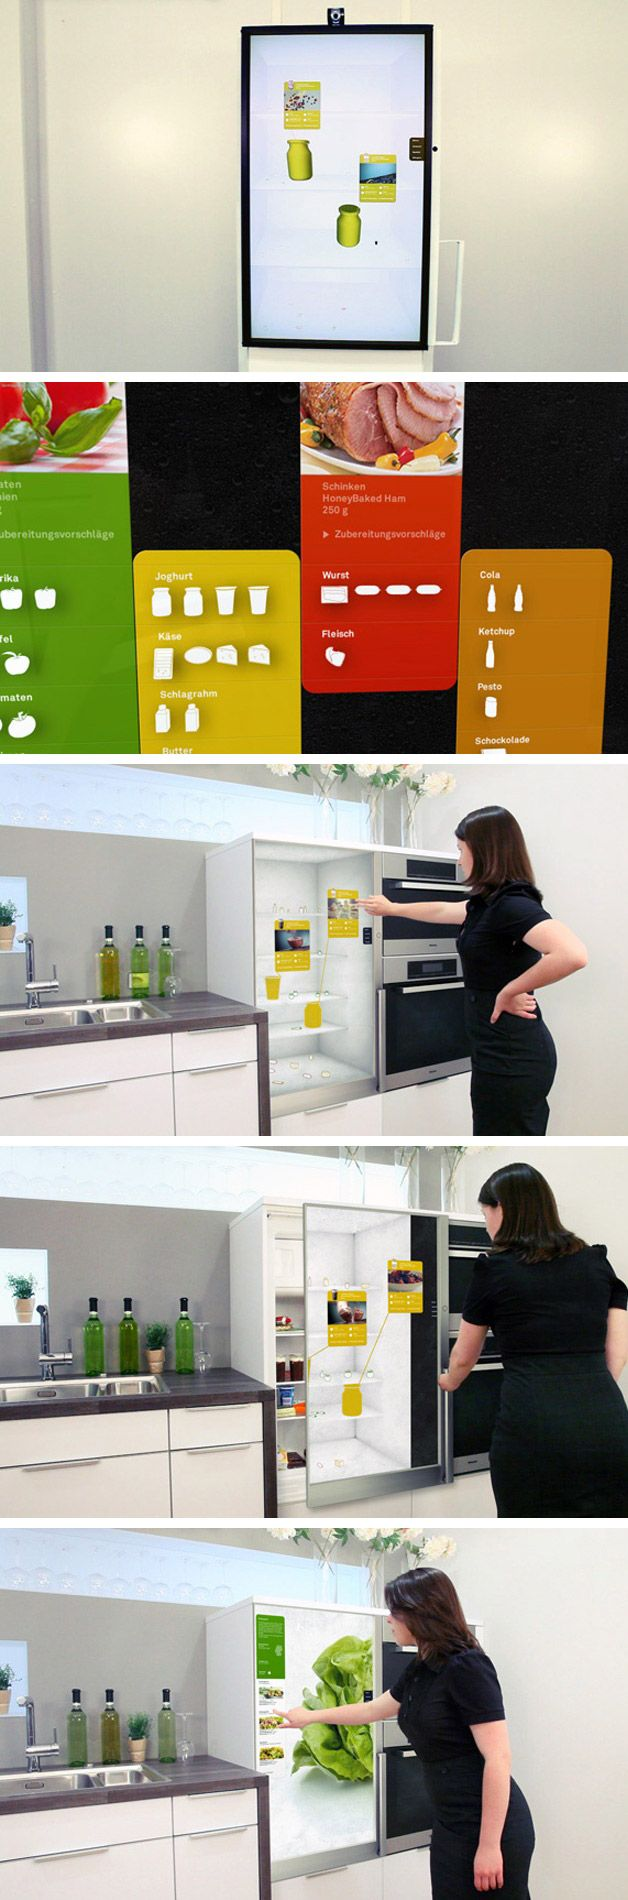 30 best smart products images on pinterest refrigerator smart